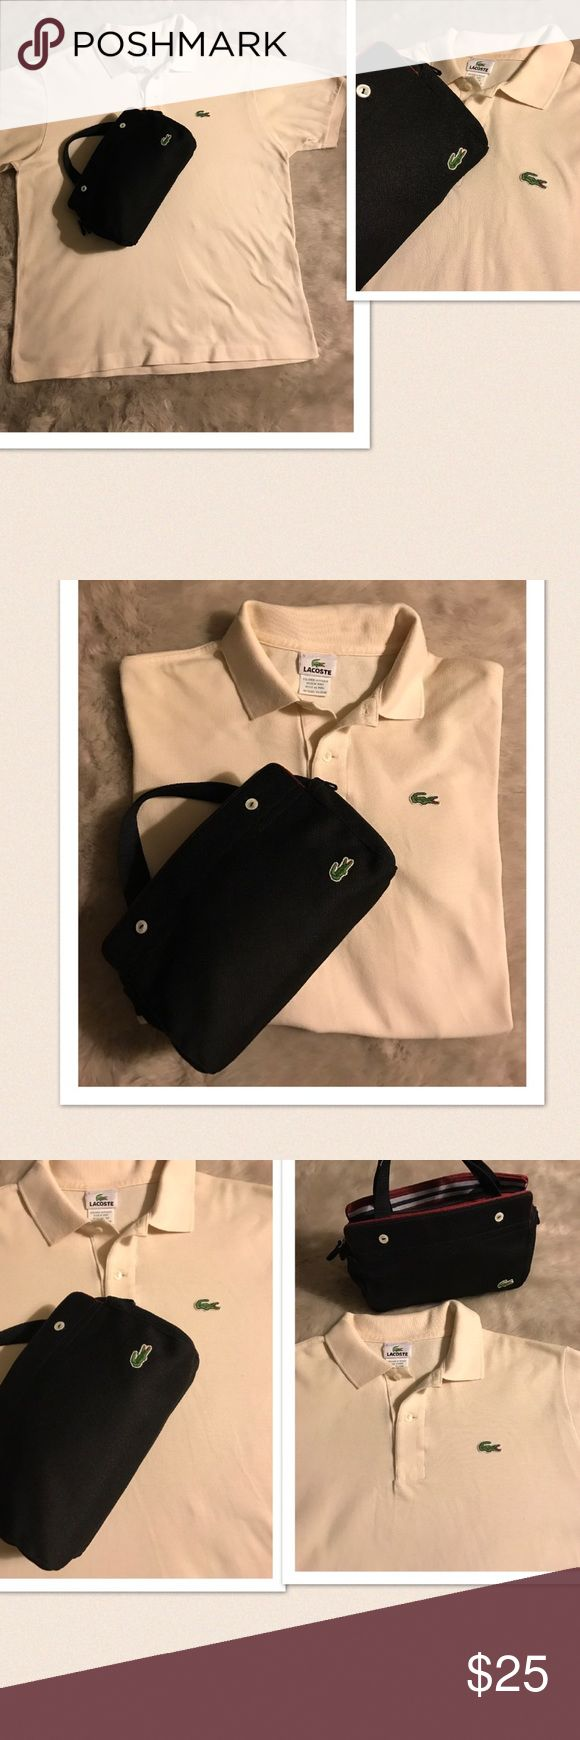 "Unisex Men's Women's Lacoste Polo Men's/ Unisex Lacoste Polo. Bag is available for sale. You will receive this Unisex polo by Lacoste. Size: 5. Pit-pit: 22.5"", length: 26"". Color: Tan/Cream. Gently washed & worn. Excellent condition. If this condition is not right for you do not purchase. Lacoste Shirts Polos"